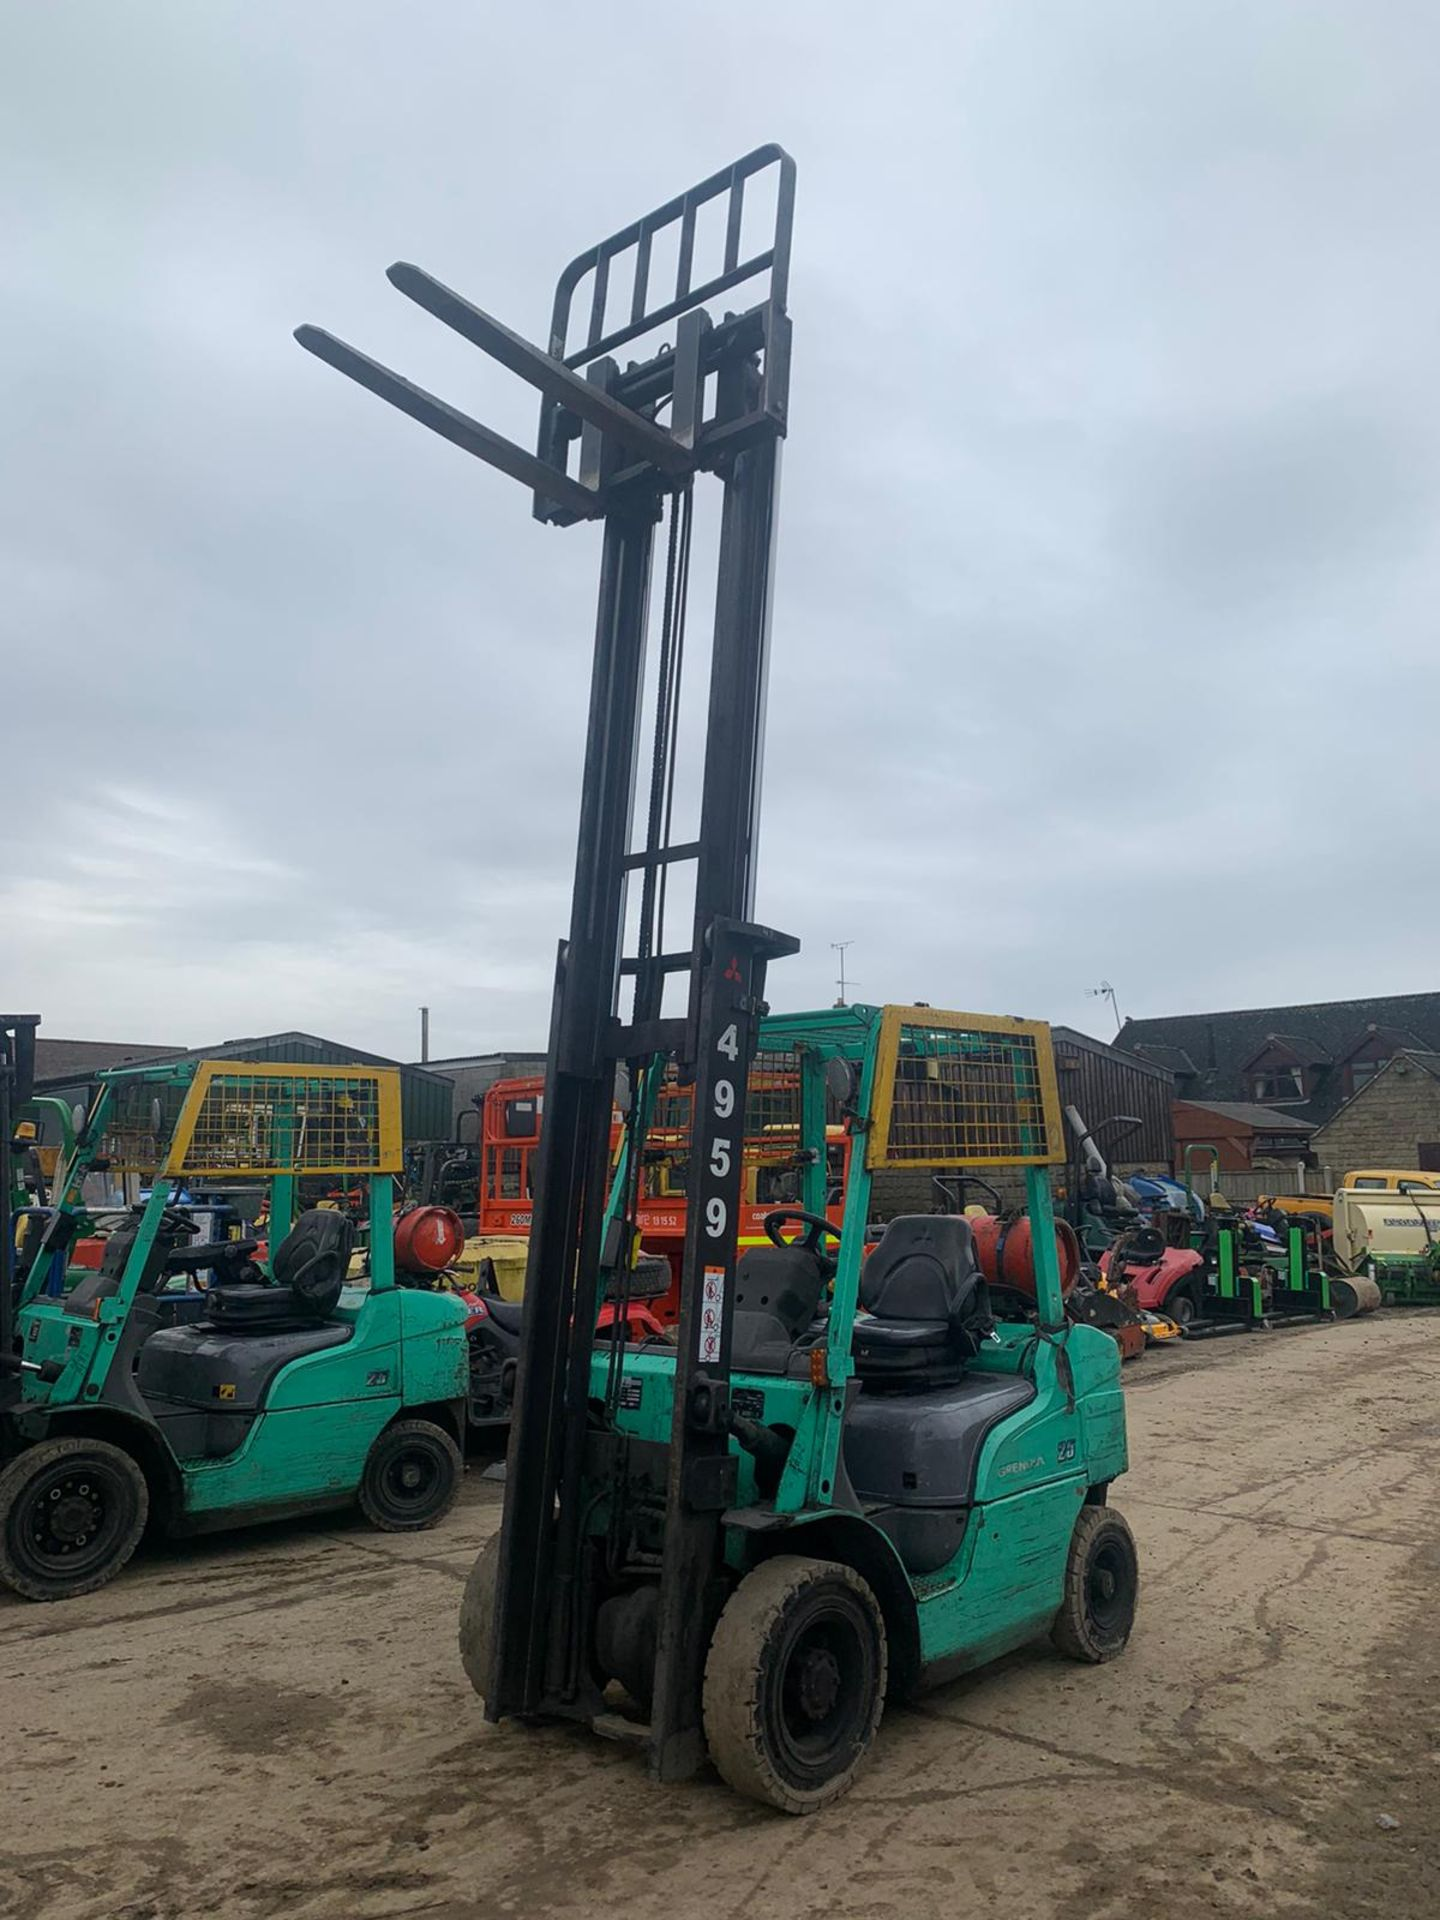 2015 MITSUBISHI FG25NT GAS FORKLIFT, RUNS, DRIVES, LIFTS, CLEAN MACHINE, SIDE SHIFT, CONTAINER SPEC - Image 2 of 5